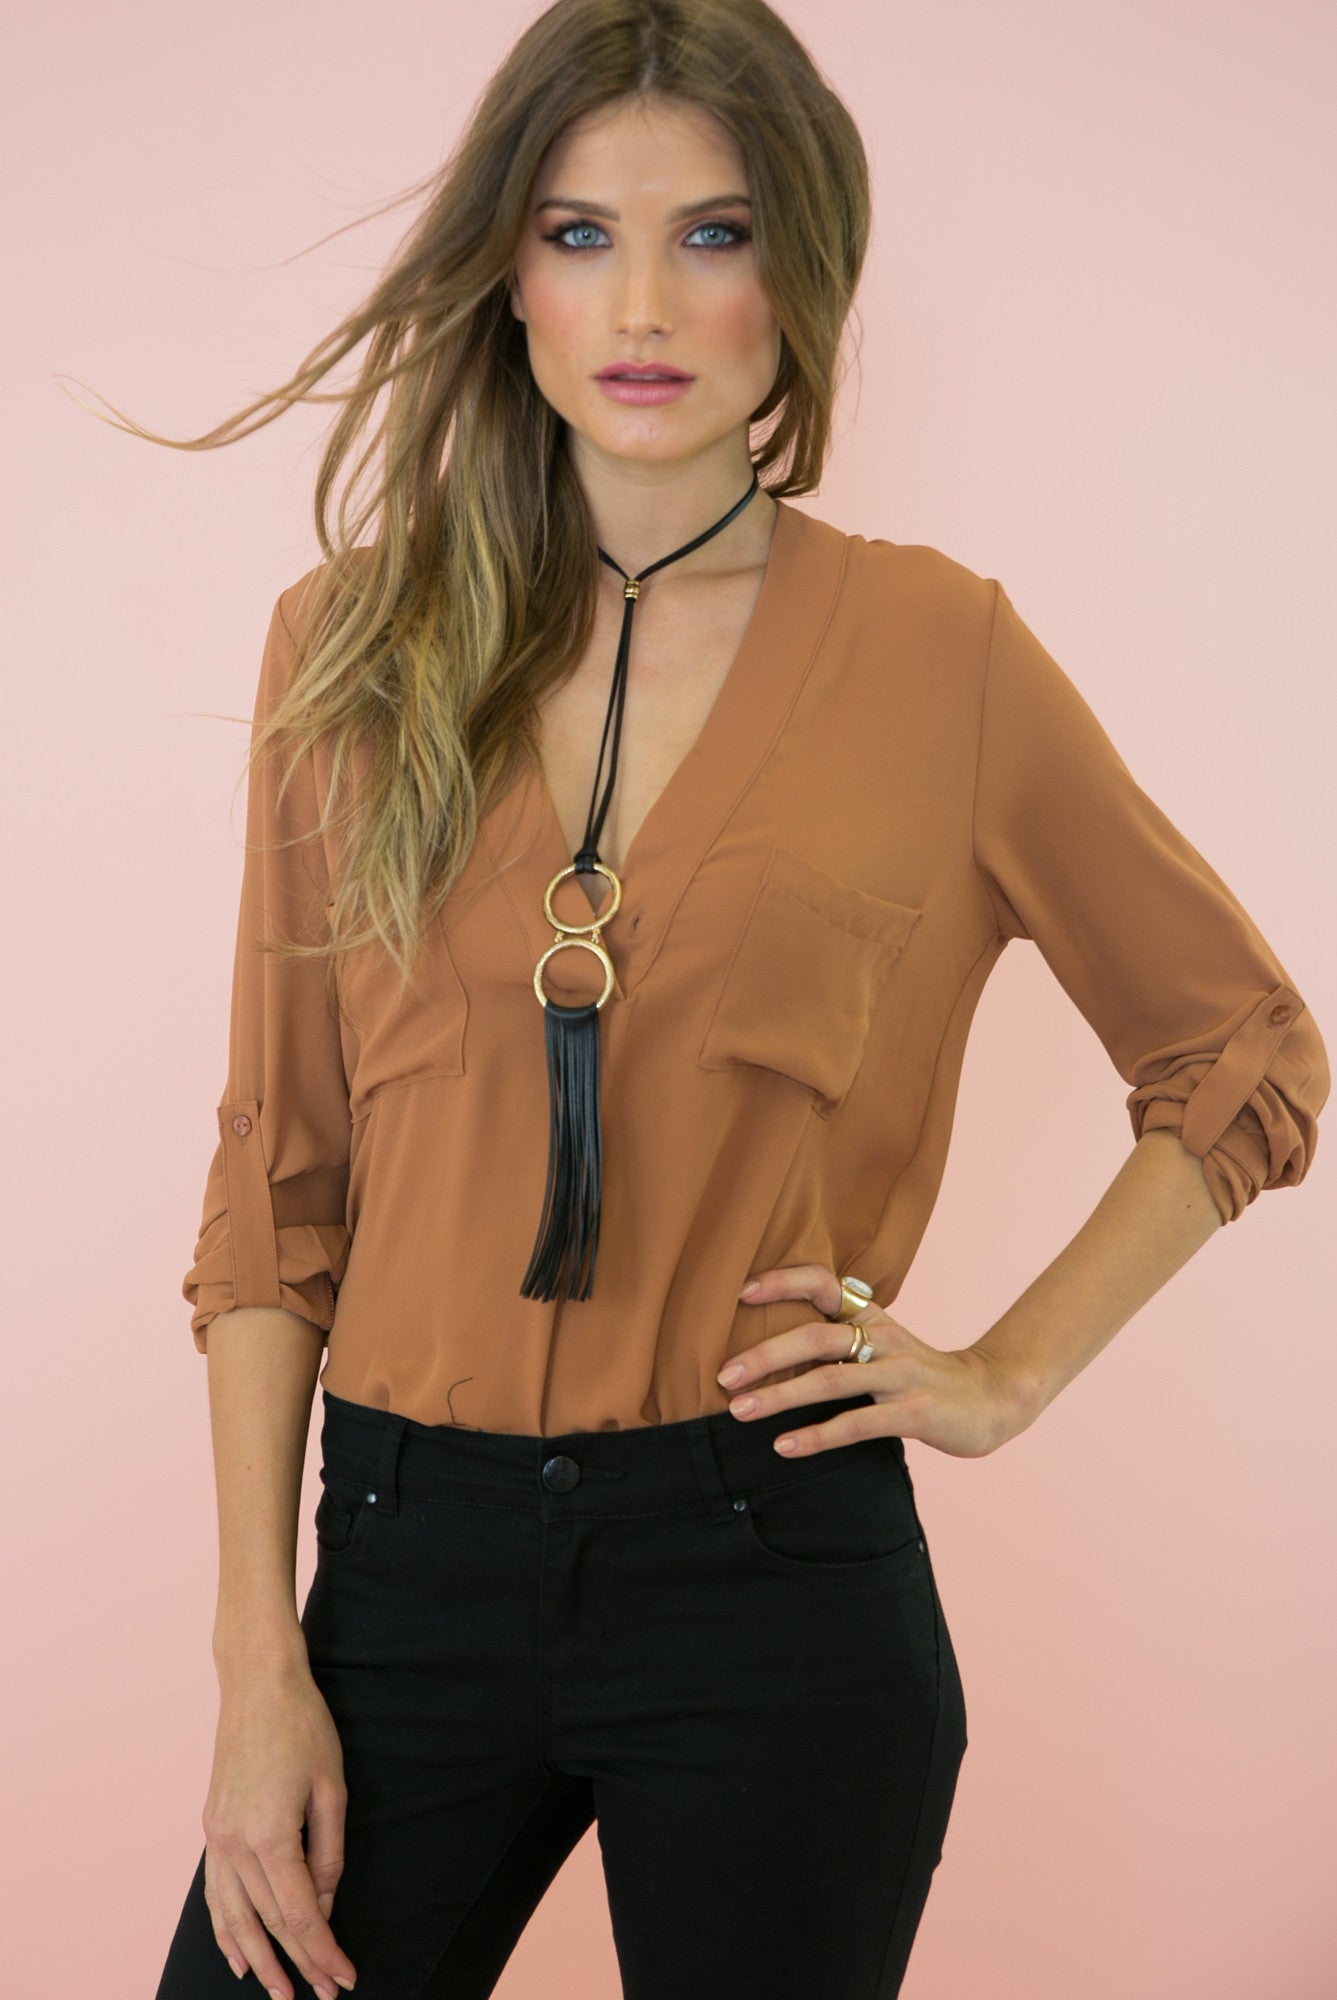 Shay Deep-V Chiffon Blouse - Terracotta /// Only 1-M Left ///